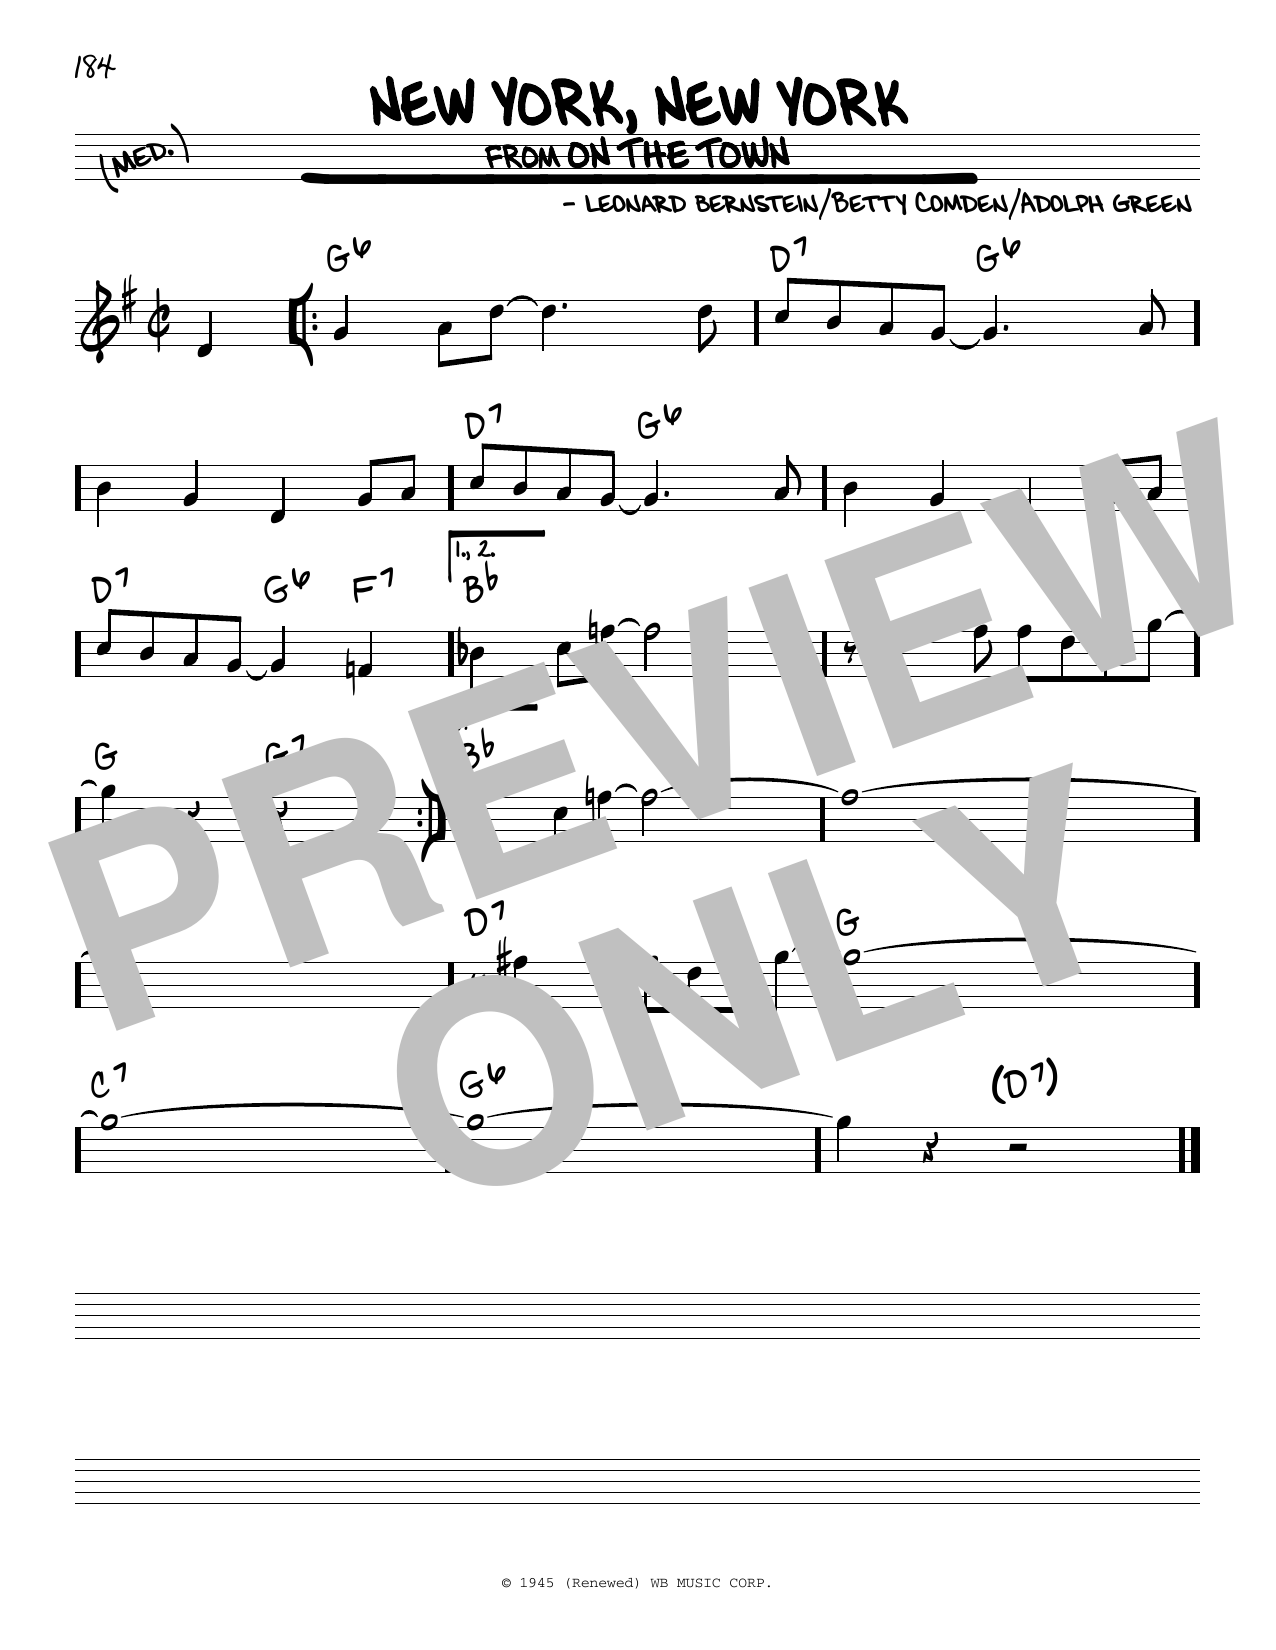 Adolph Green New York, New York (from On the Town) sheet music notes and chords. Download Printable PDF.